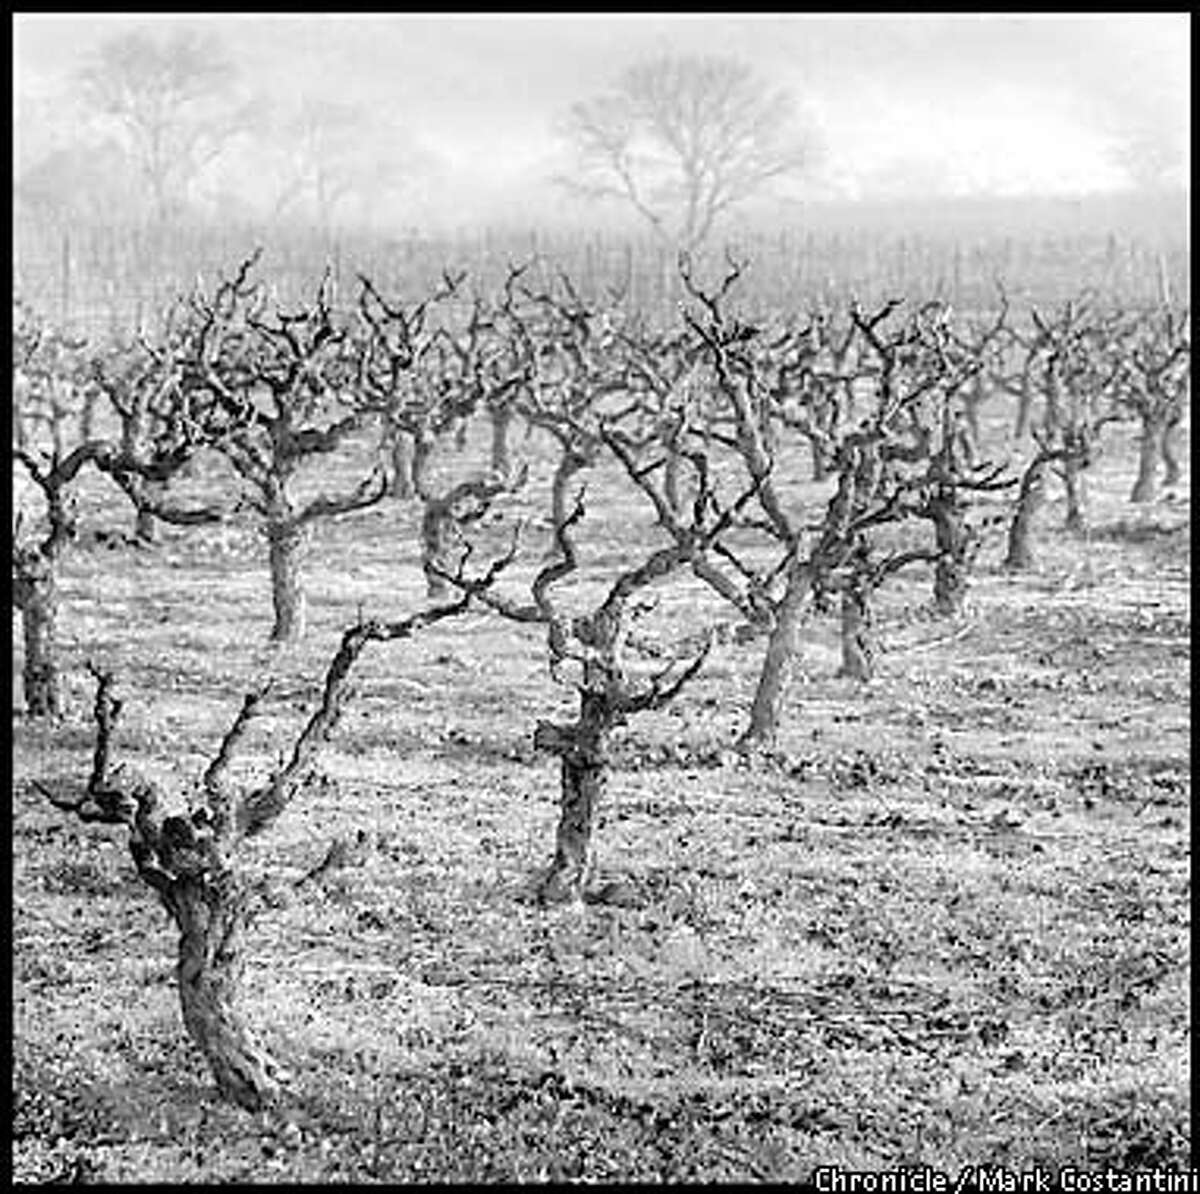 OLDVINEZIN17c-B-03JAN01-FD-MC. Old vine zinfandel vines at the Valley of The Moon winery in Sonoma County. Photo: Mark Costantini/The Chronicle